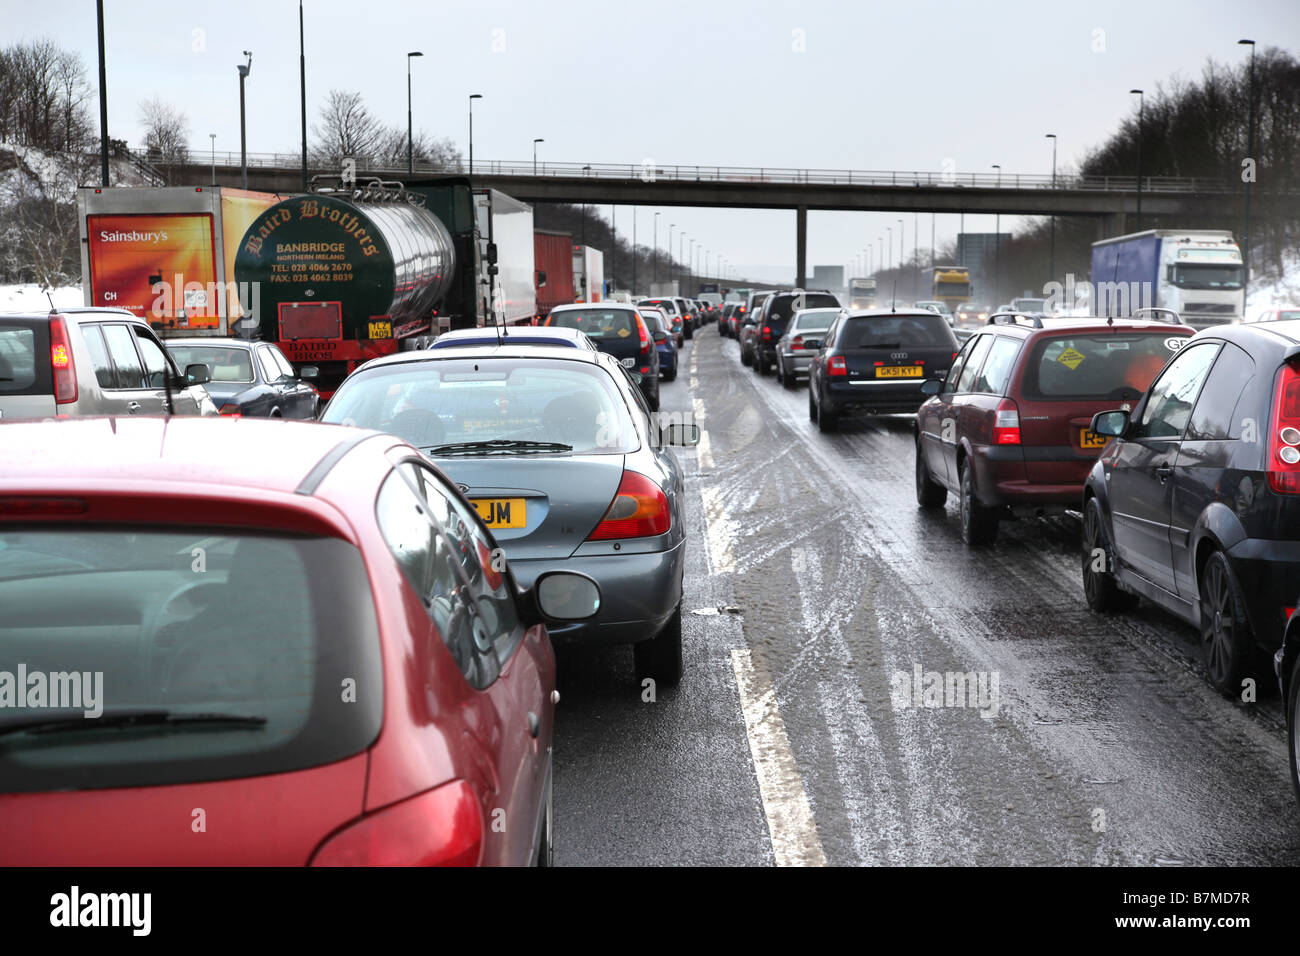 M20, traffic tailback on coast bound carriageway. Kent. UK - Stock Image